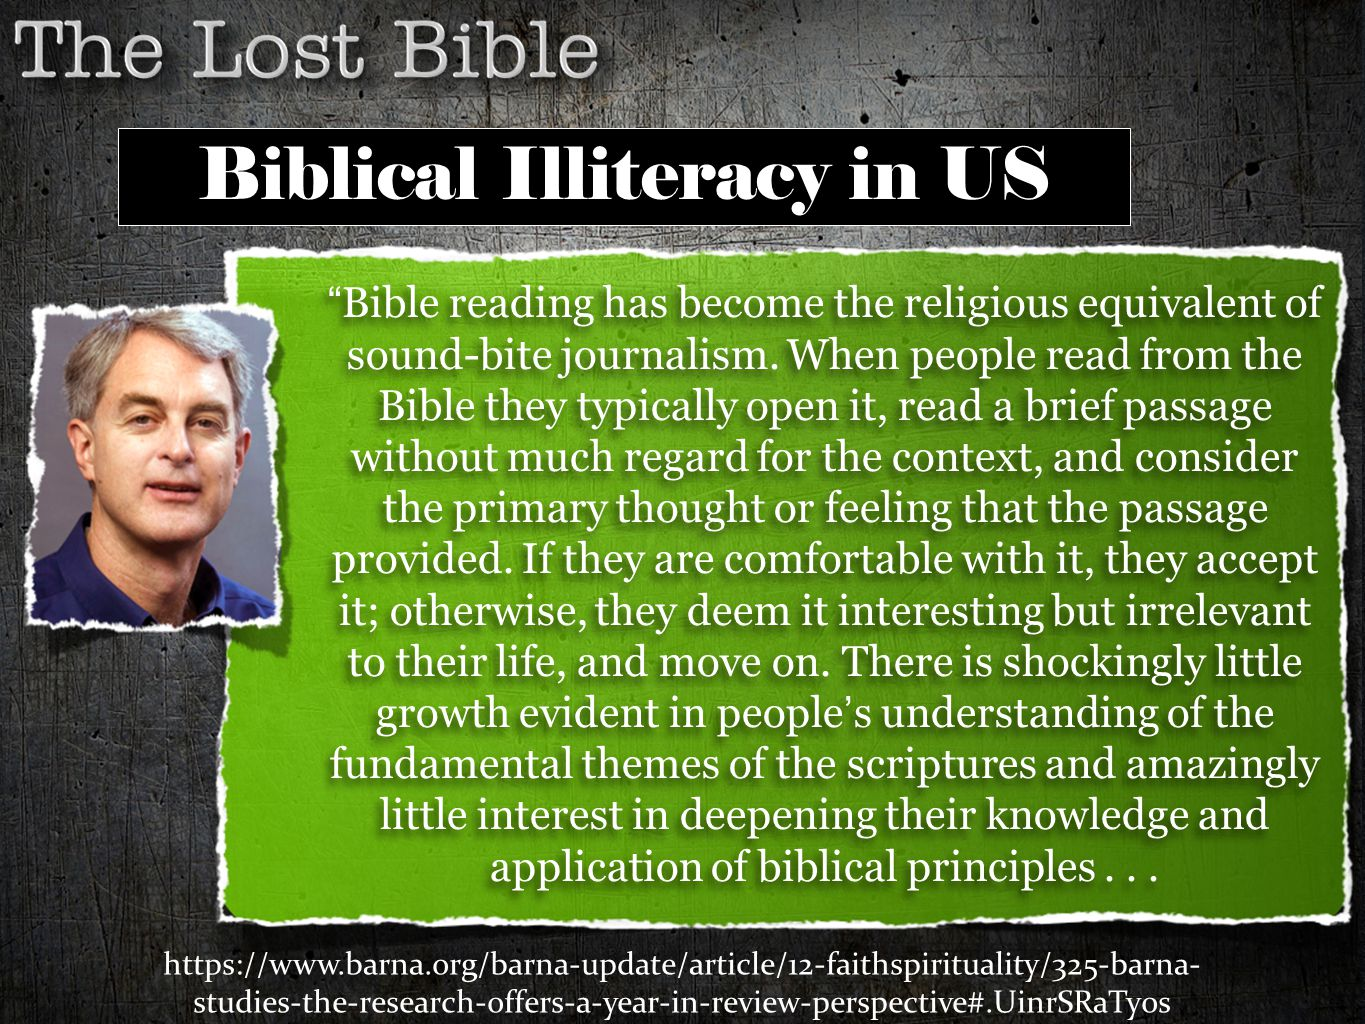 """Bible reading has become the religious equivalent of sound-bite journalism. When people read from the Bible they typically open it, read a brief pass"